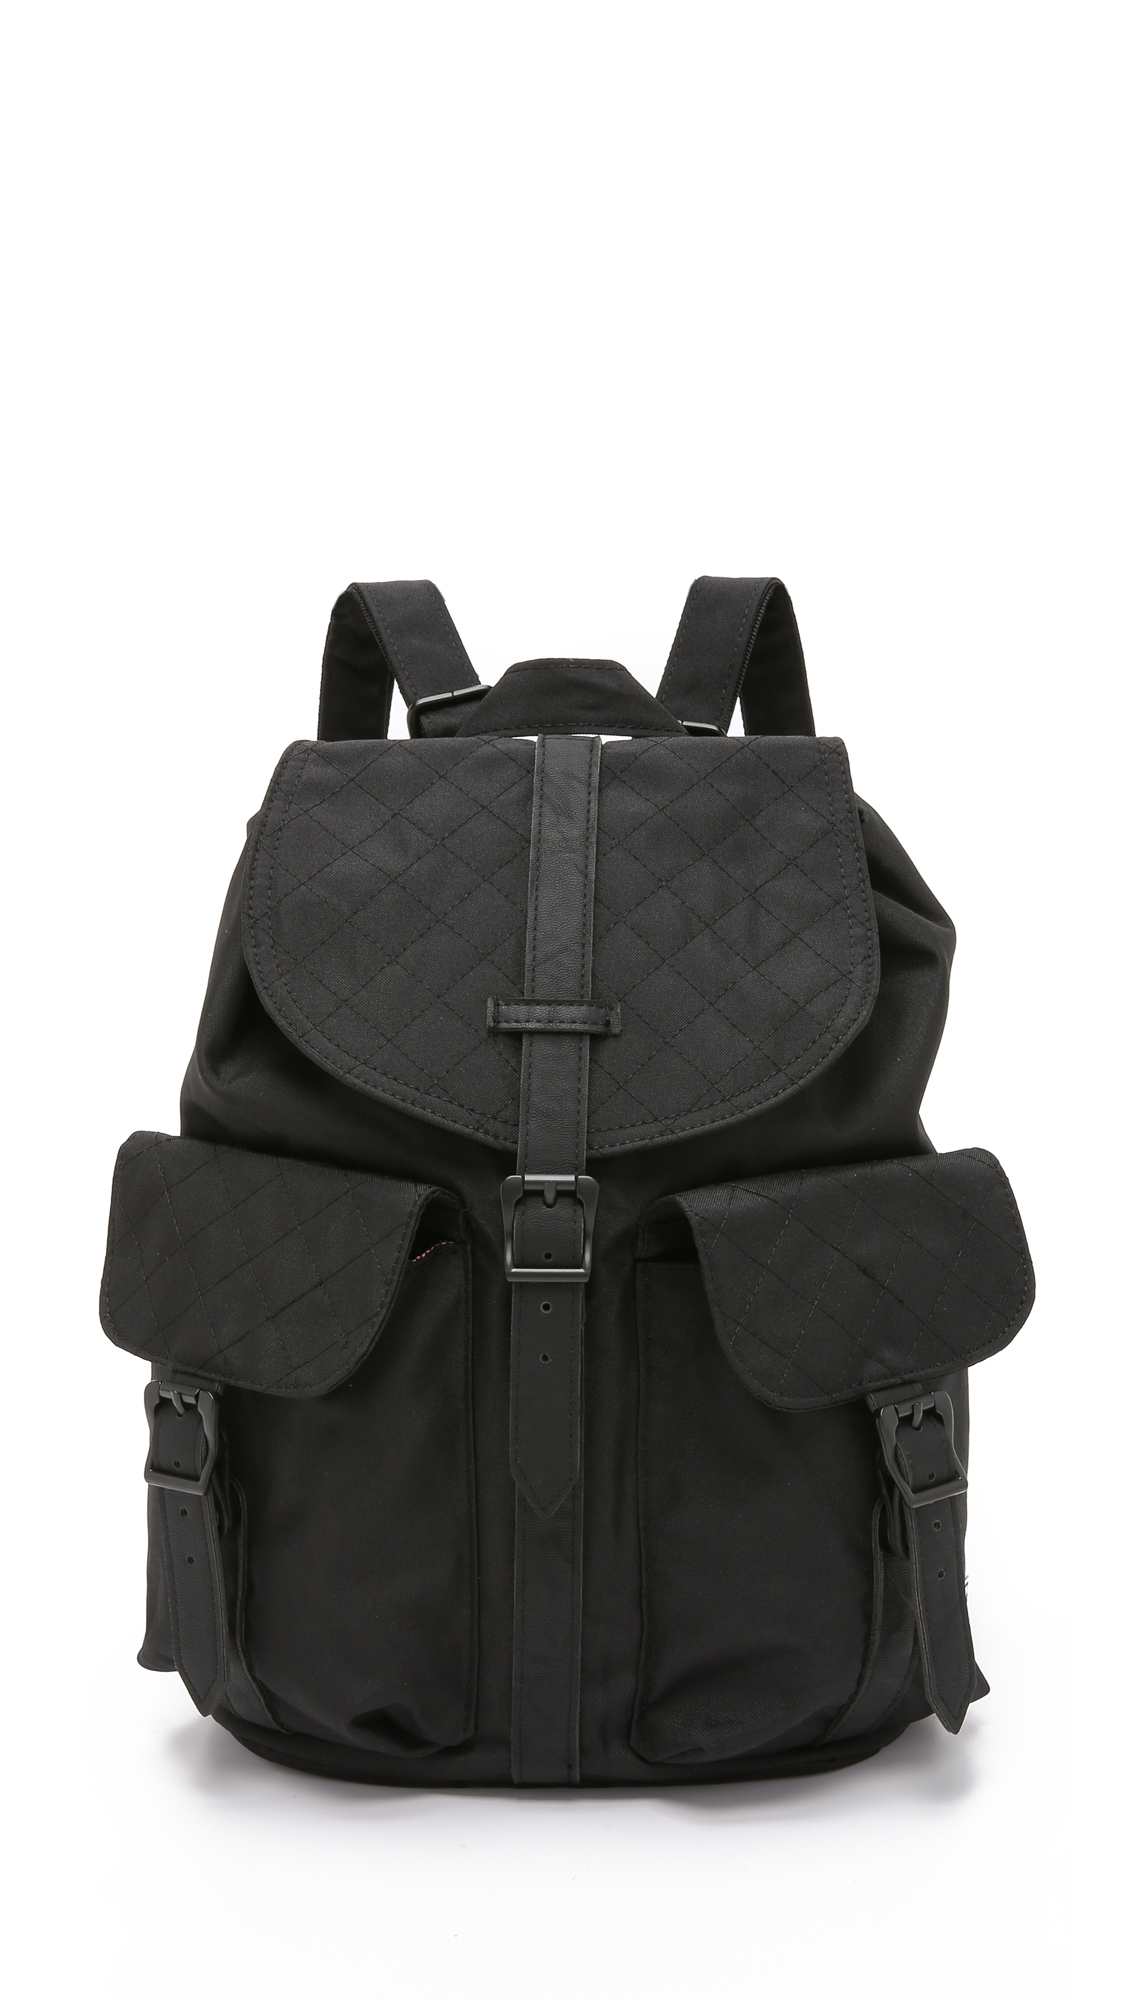 627956a21f Lyst - Herschel Supply Co. Quilted Dawson Backpack - Black in Black